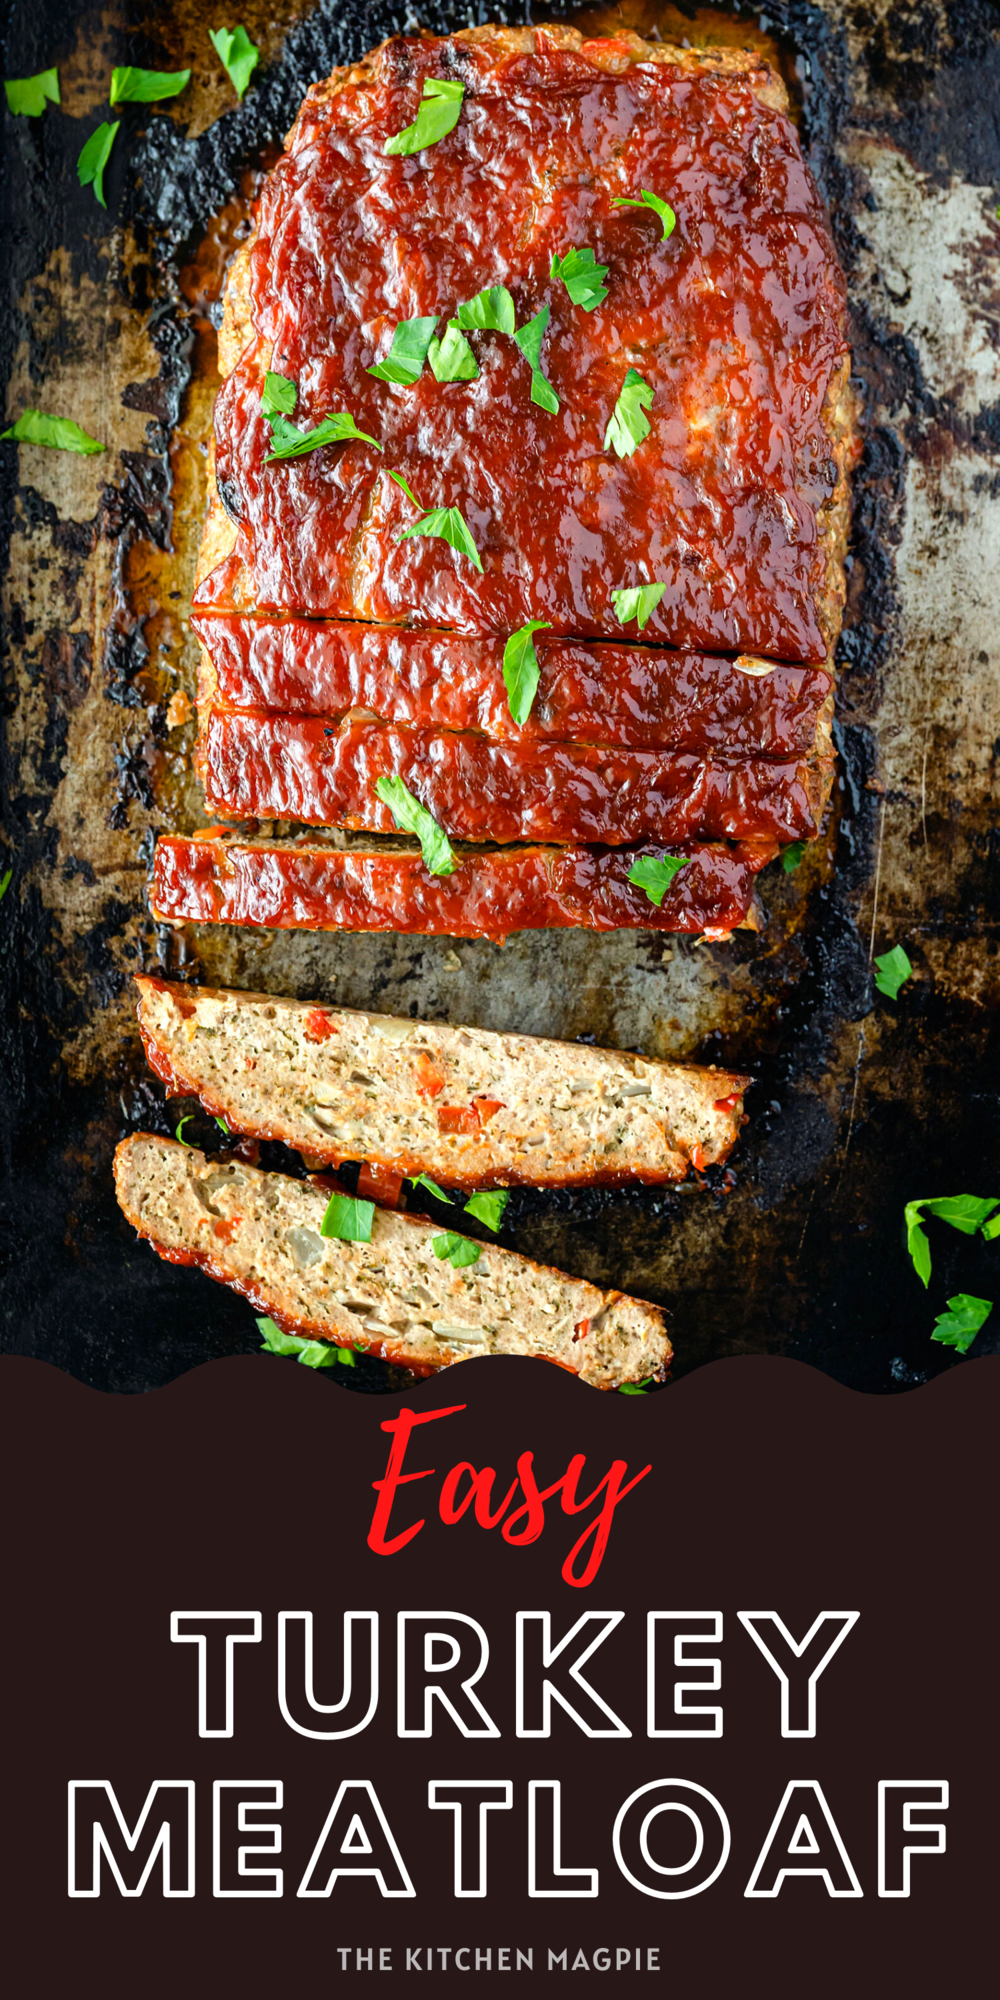 This tender, moist turkey meatloaf is bursting with flavor thanks to red peppers and onions in the meatloaf and a spiced brown sugar ketchup sauce topping it!